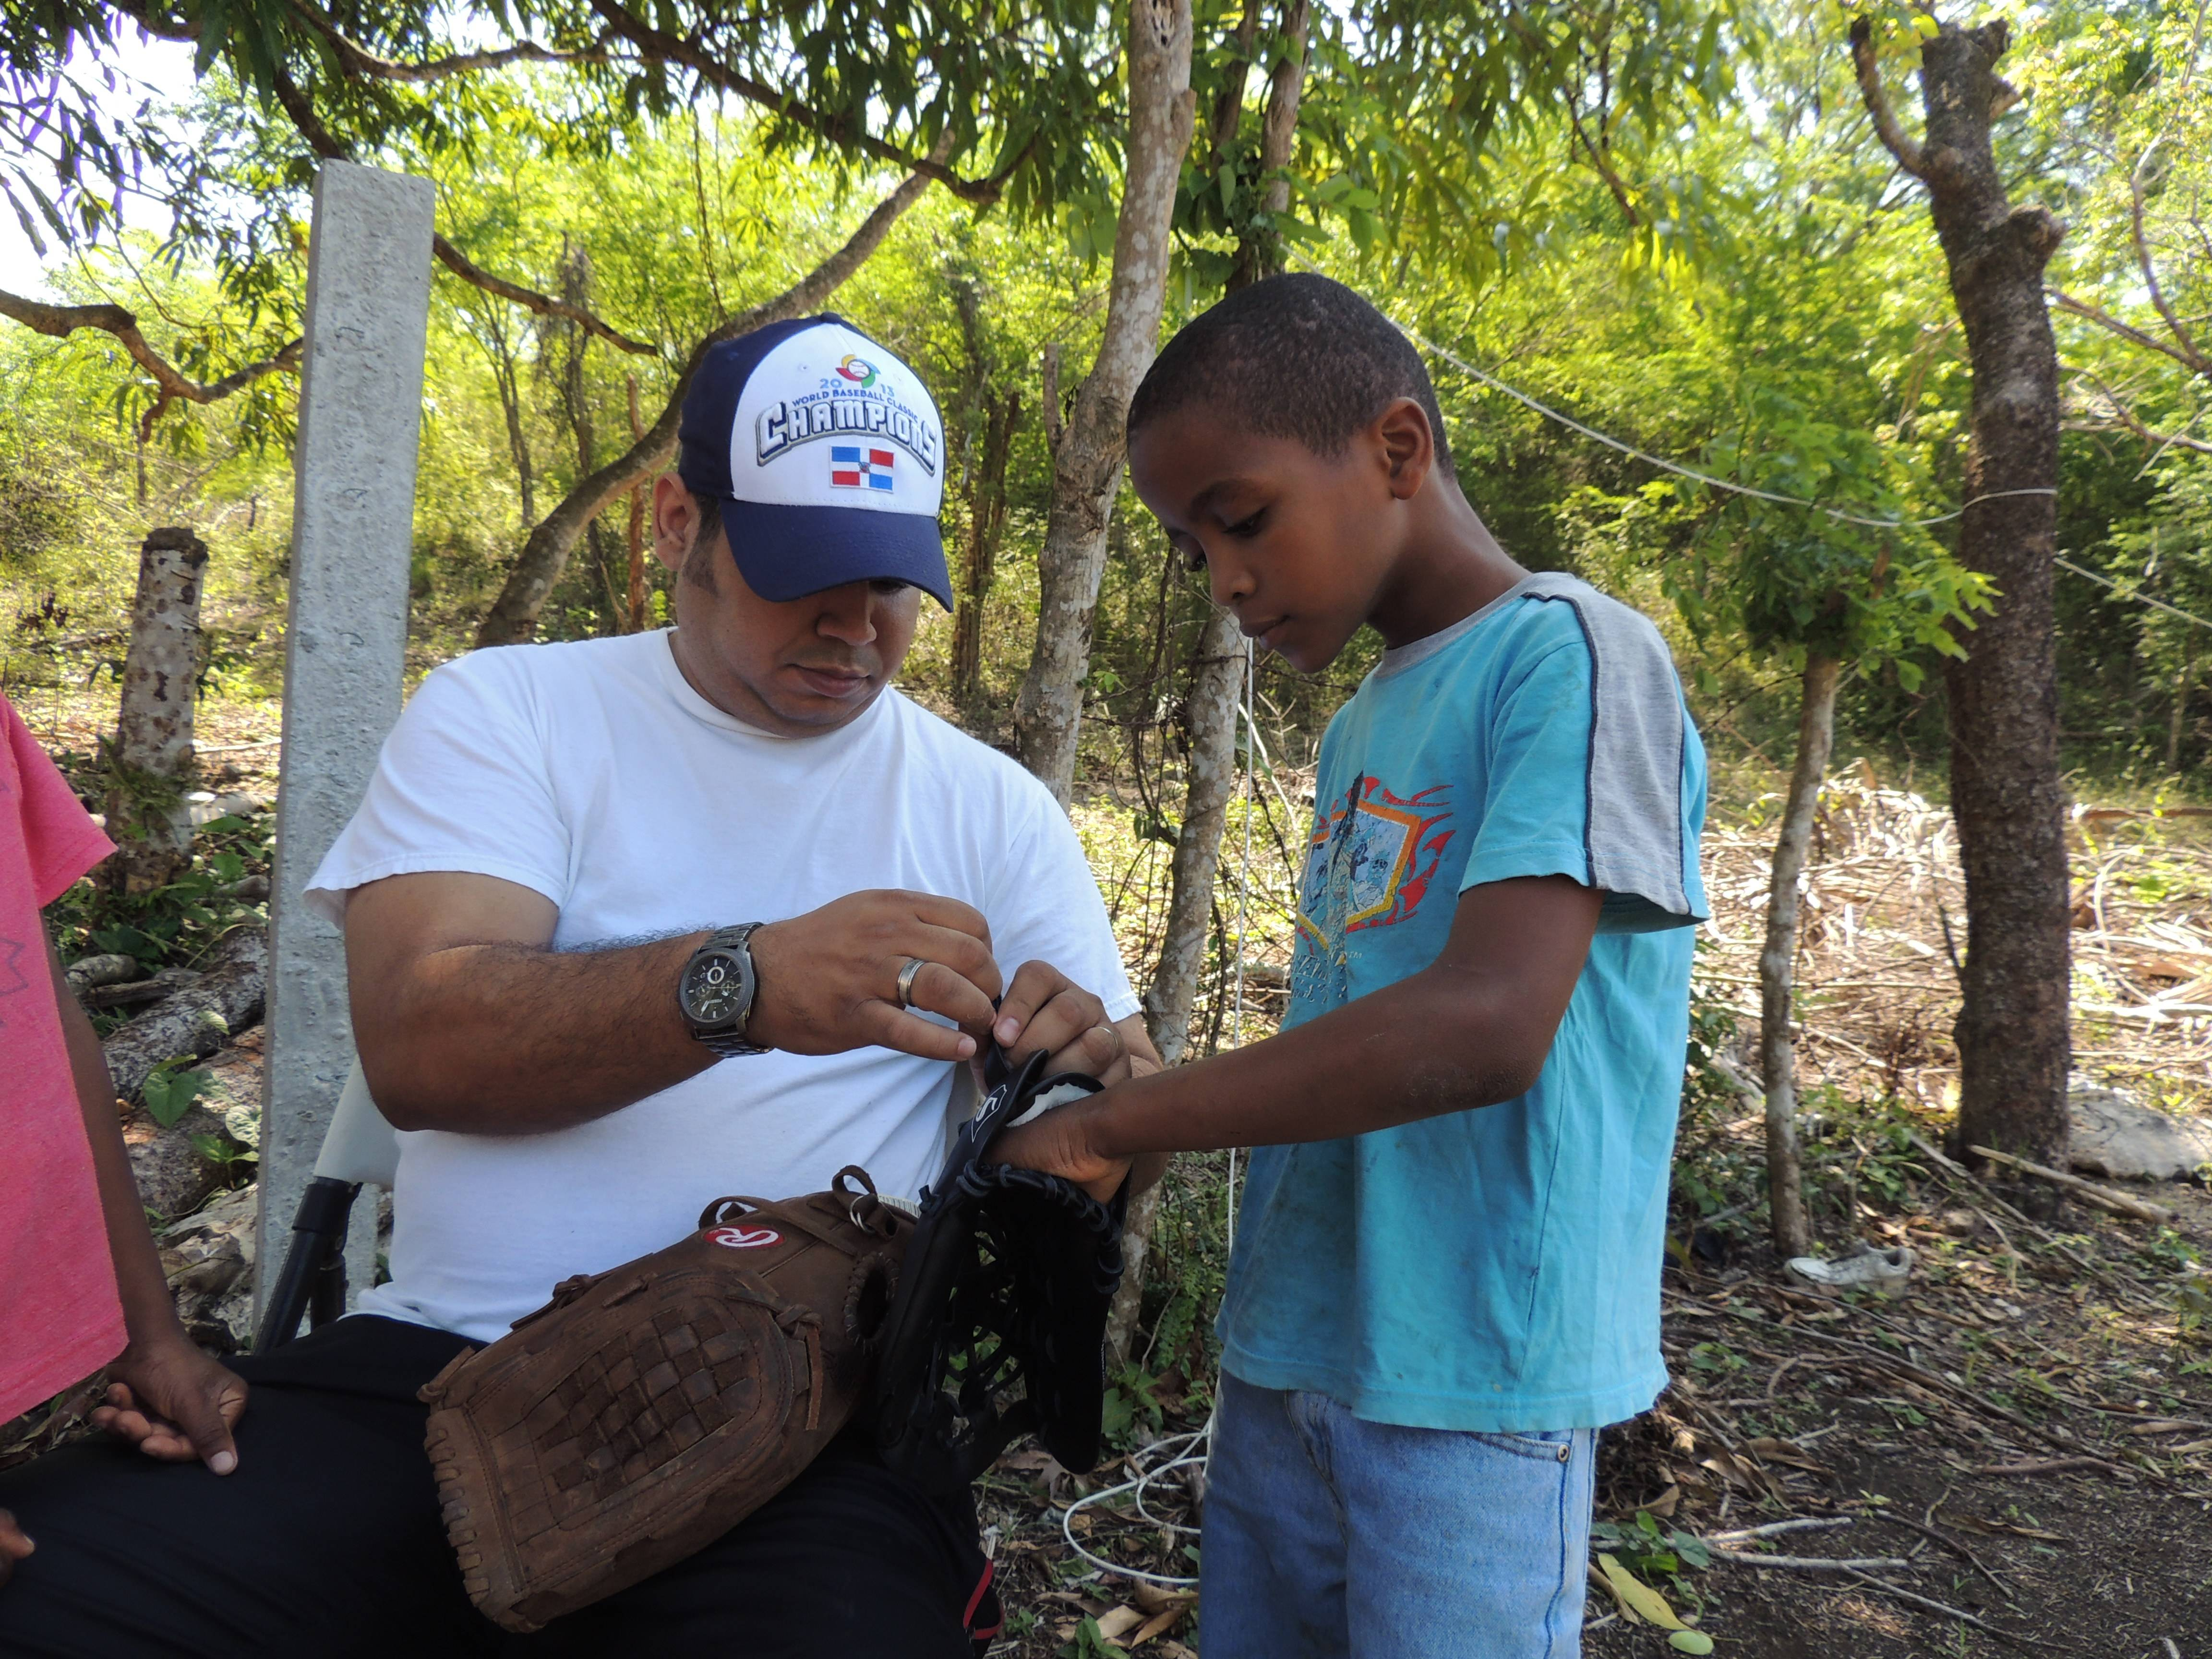 Rafael Hernandez, Country Manager for Willow Creek's relief efforts in the Dominican Republic helps a young boy fit a baseball mitt provided by charity partner Gear for Goals.